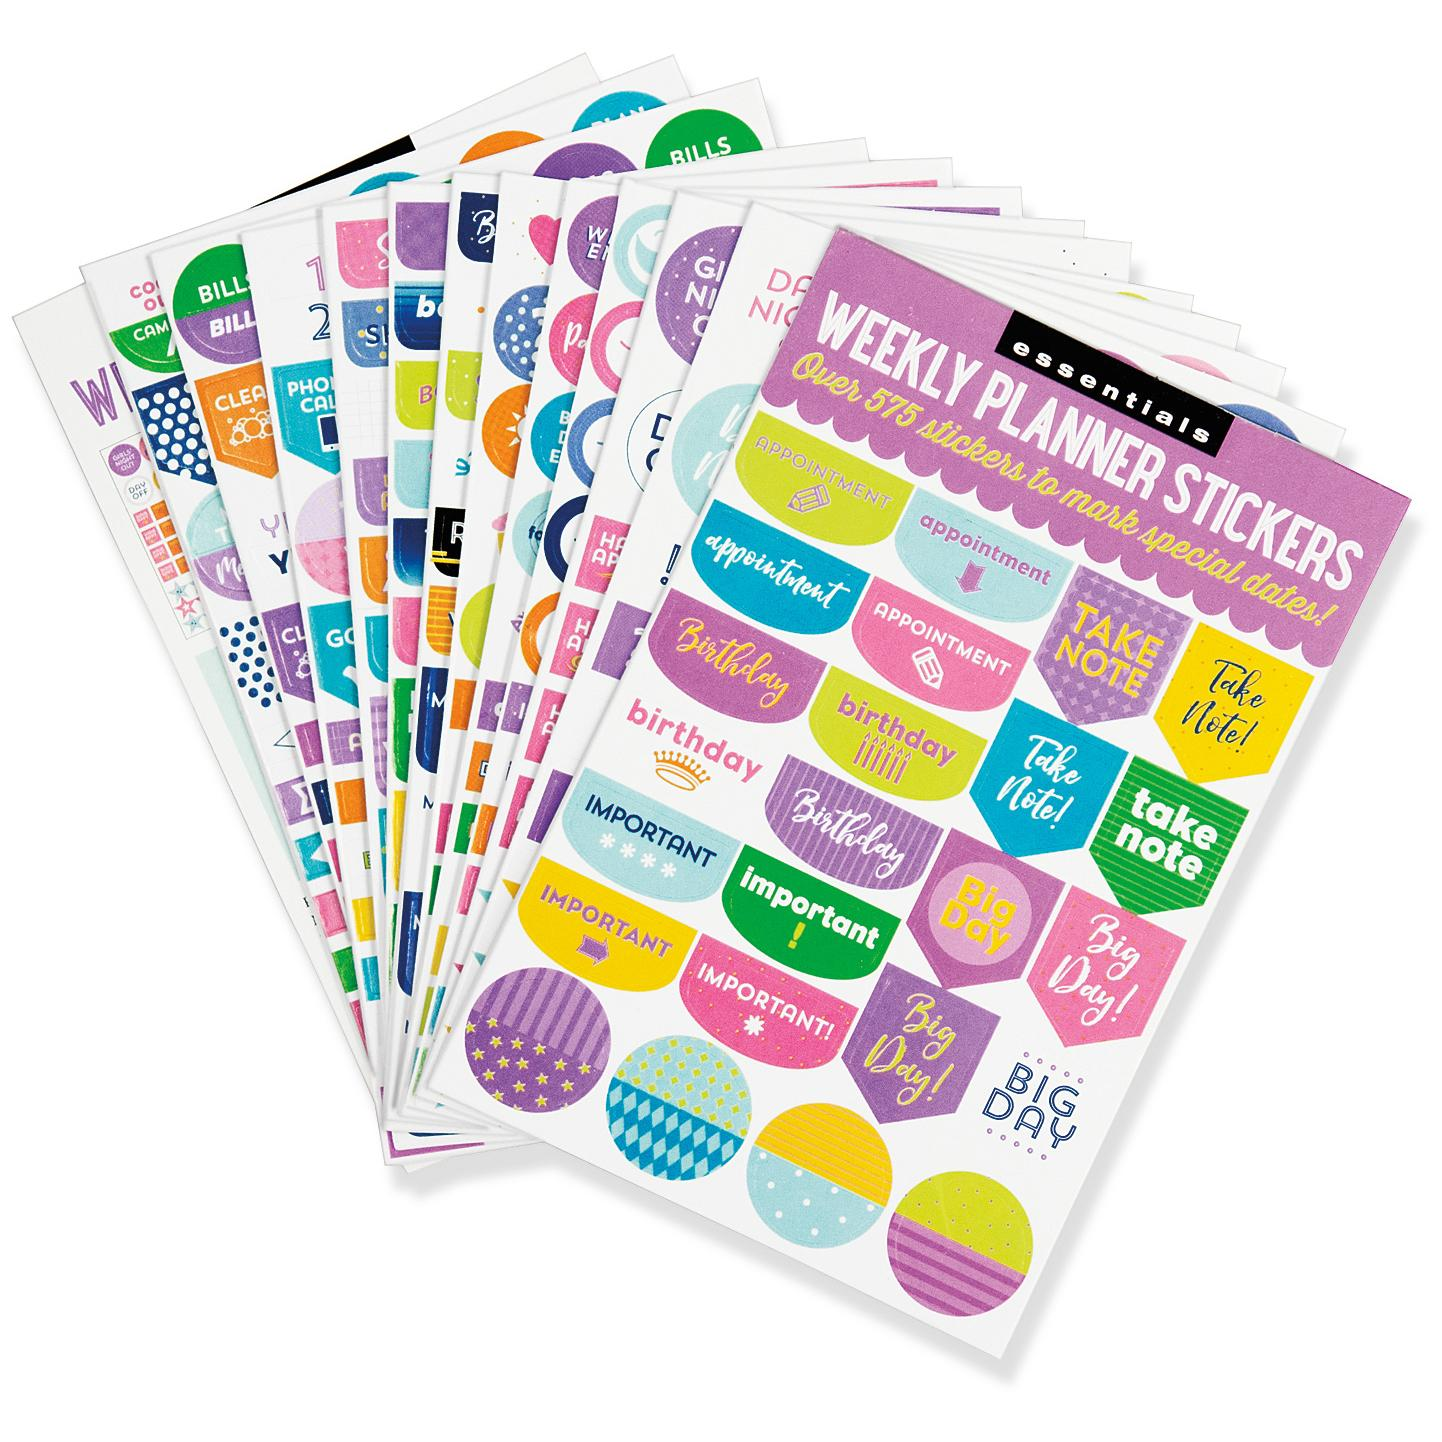 Essentials Weekly Planner Stickers (Set of 575 Stickers ...